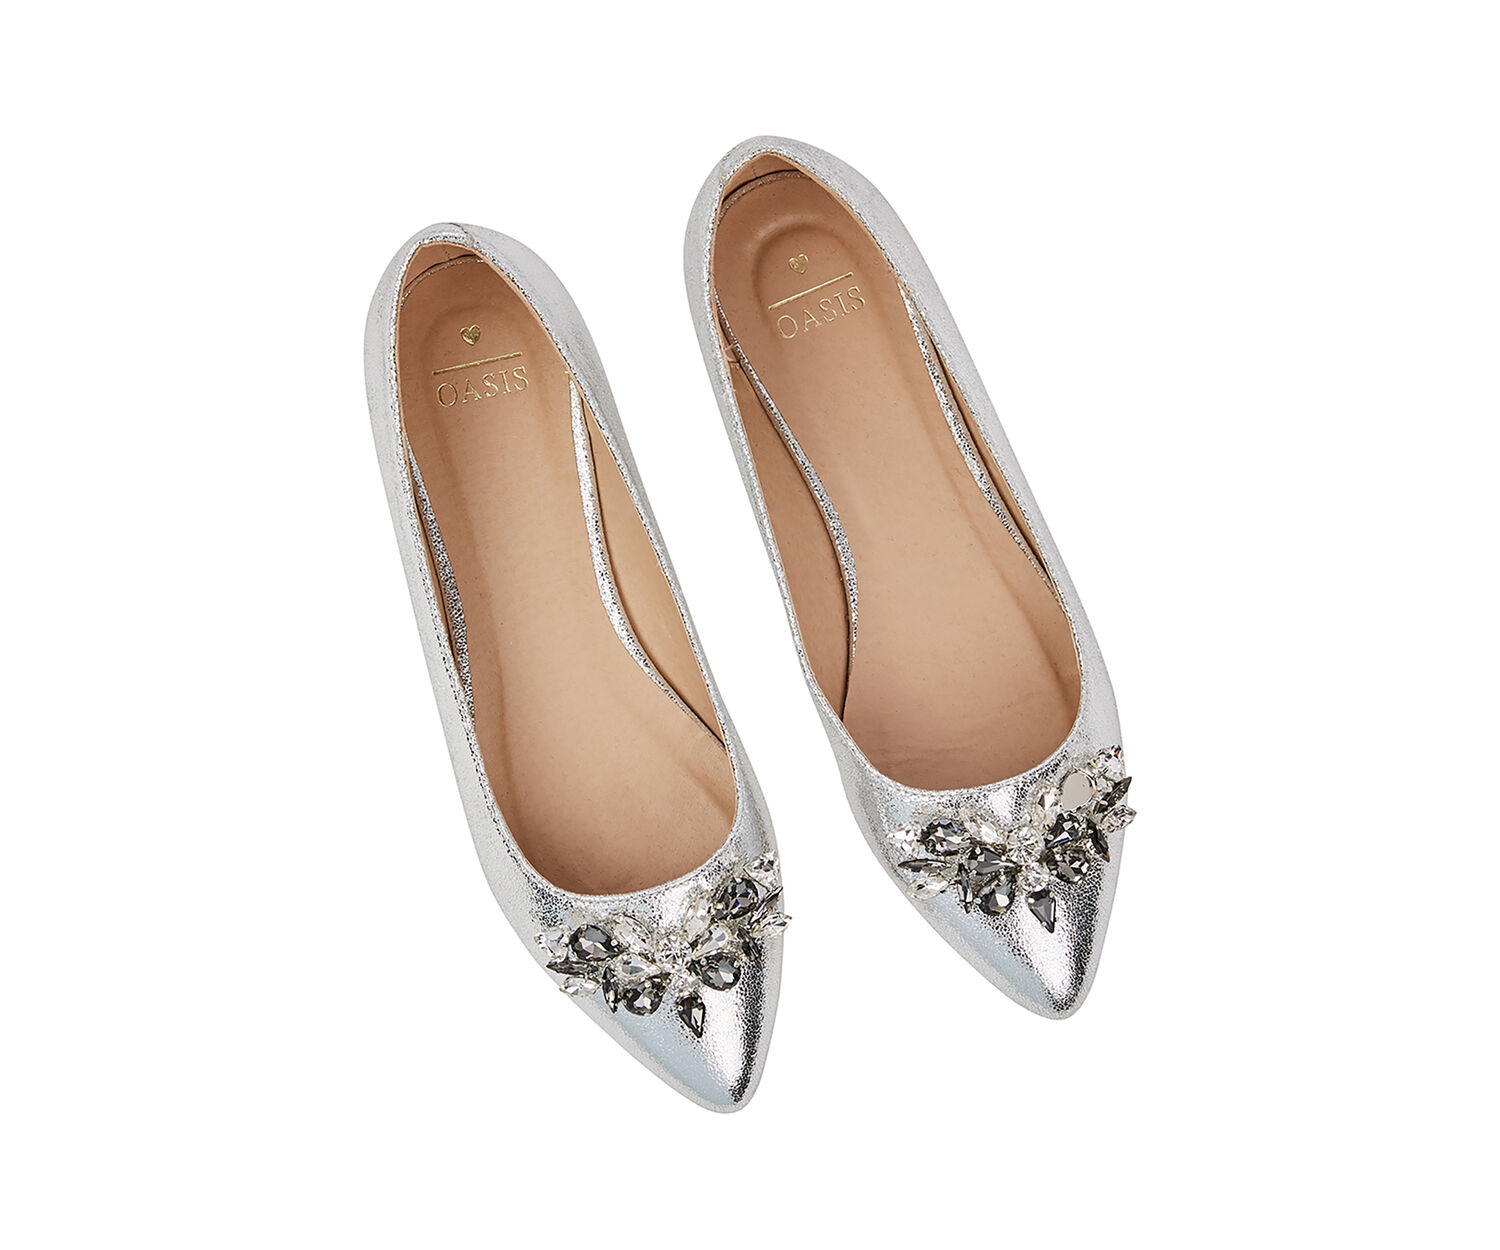 Oasis, IVY EMBELLISHED FLAT POINT Silver 1